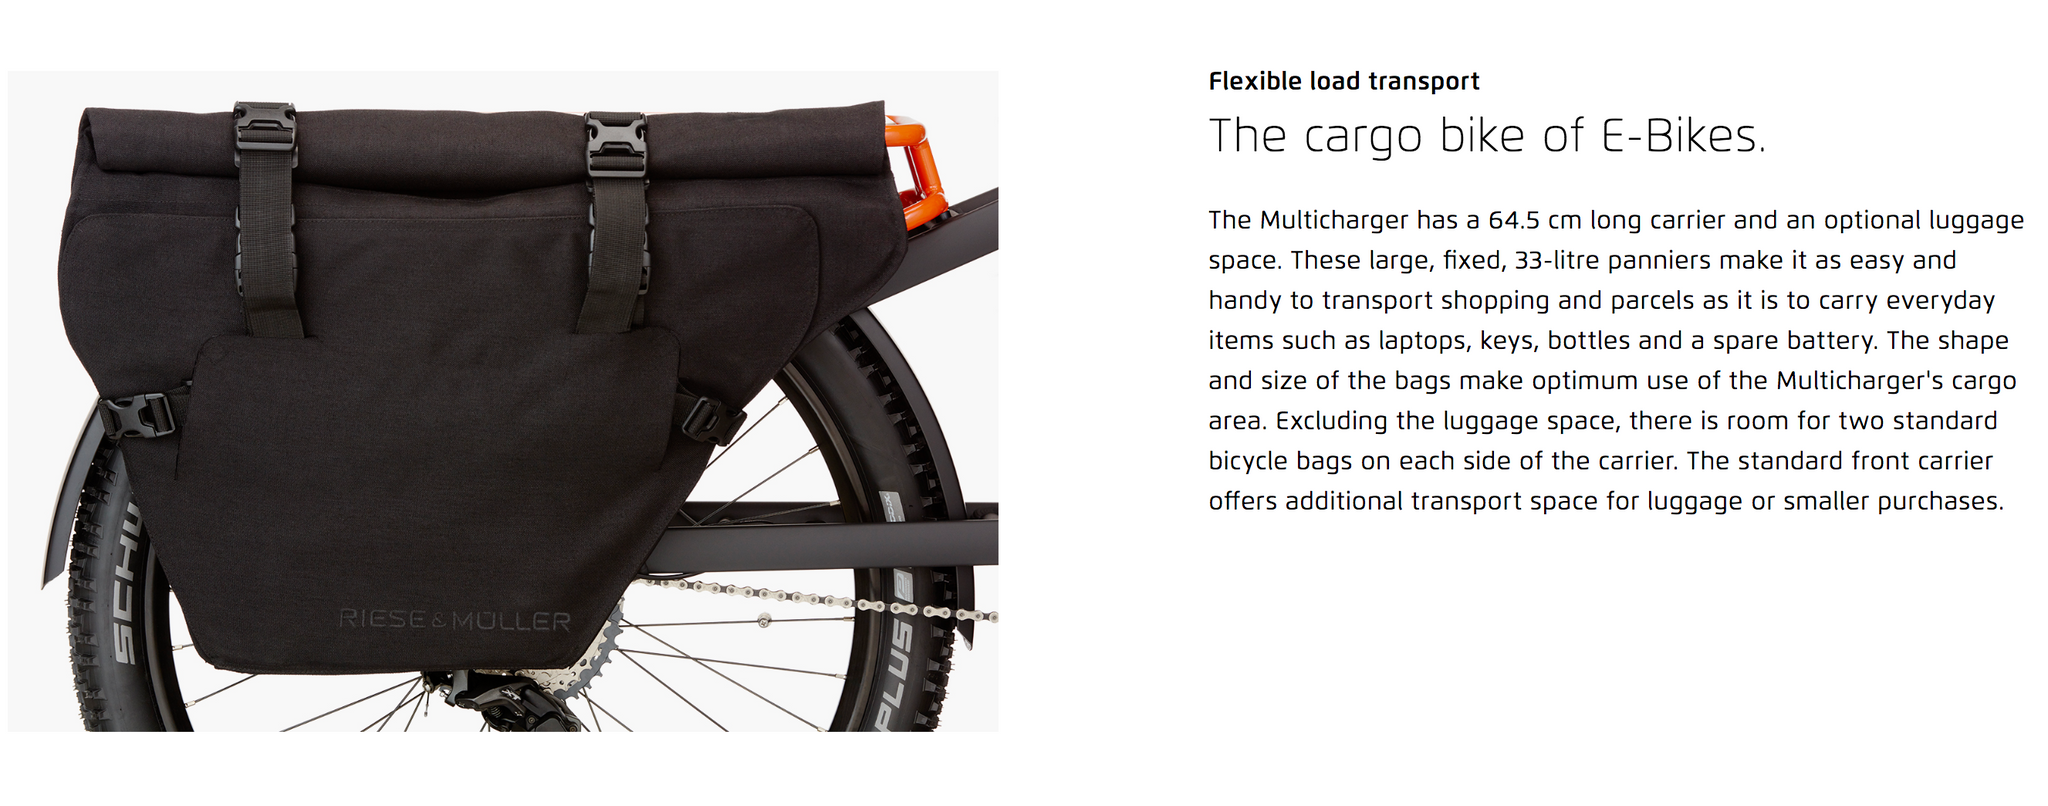 Flexible load transport  The cargo bike of E-Bikes. The Multicharger has a 64.5 cm long carrier and an optional luggage space. These large, fixed, 33-litre panniers make it as easy and handy to transport shopping and parcels as it is to carry everyday items such as laptops, keys, bottles and a spare battery. The shape and size of the bags make optimum use of the Multicharger's cargo area. Excluding the luggage space, there is room for two standard bicycle bags on each side of the carrier. The standard front carrier offers additional transport space for luggage or smaller purchases.